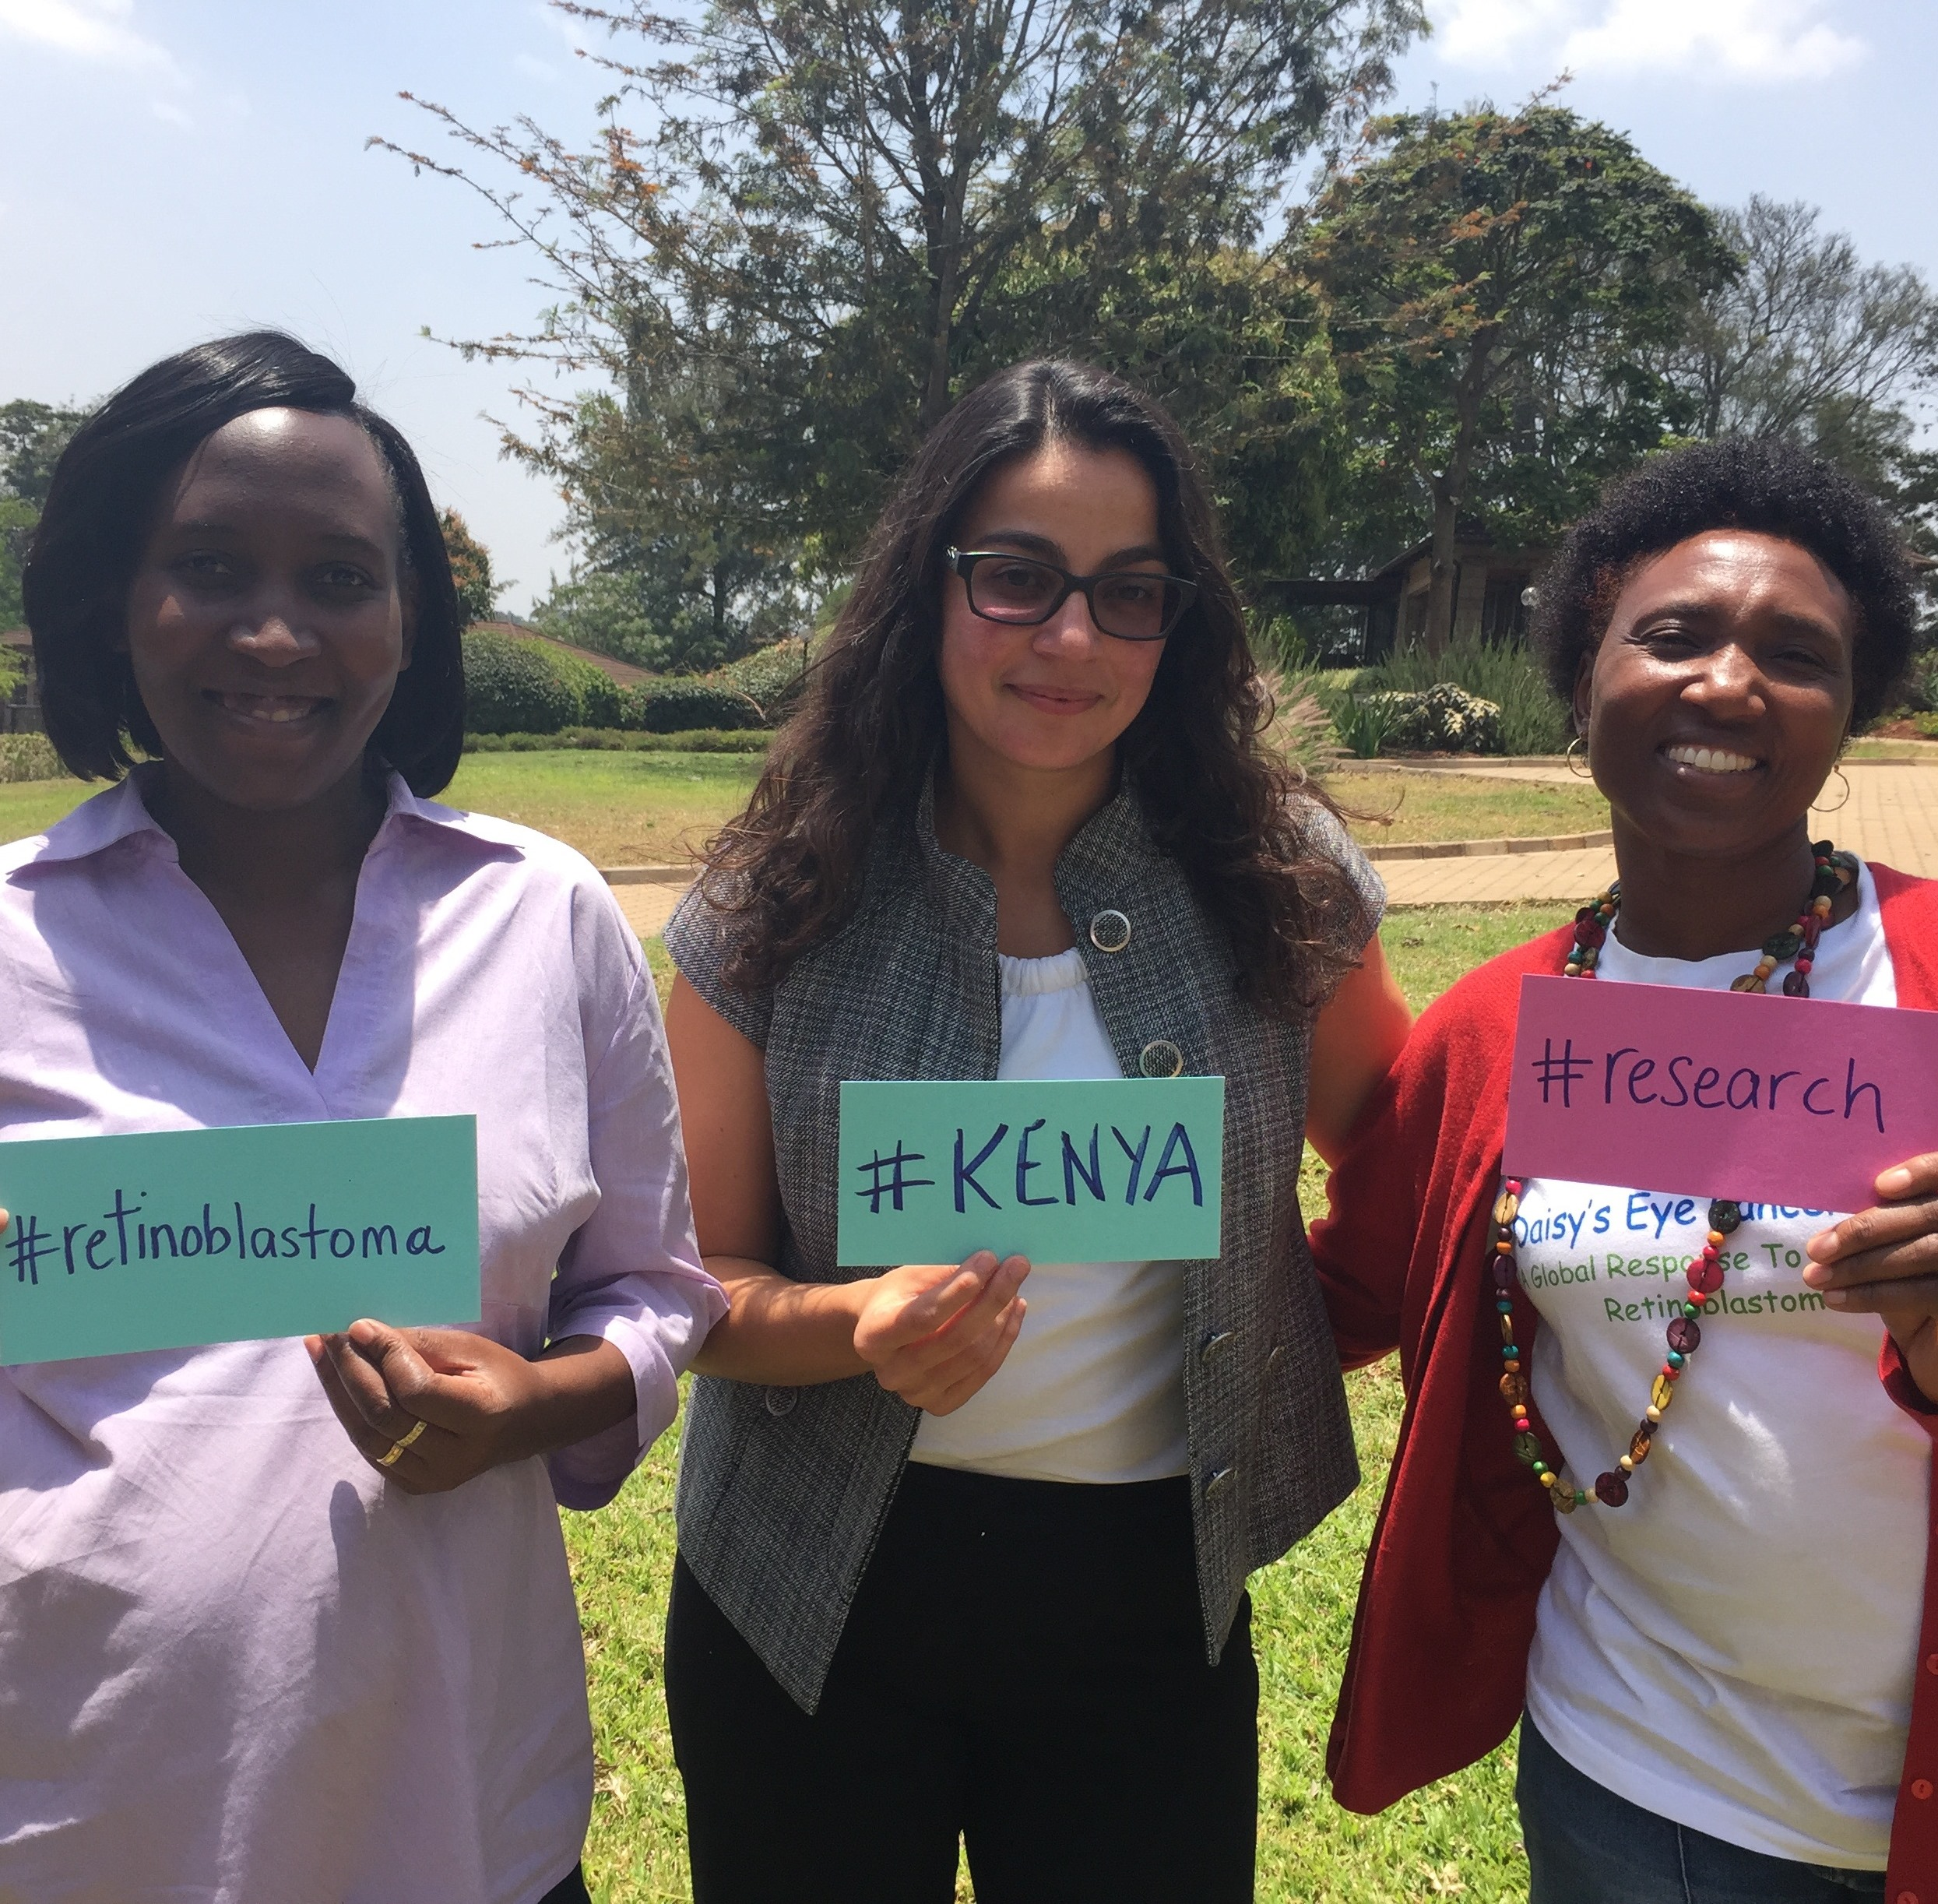 SickKids Instagram Photo with Dr. Helen Dimaras (middle), Dr. Lucy Njambi (left) and Dr. Kahaki Kimani (right)